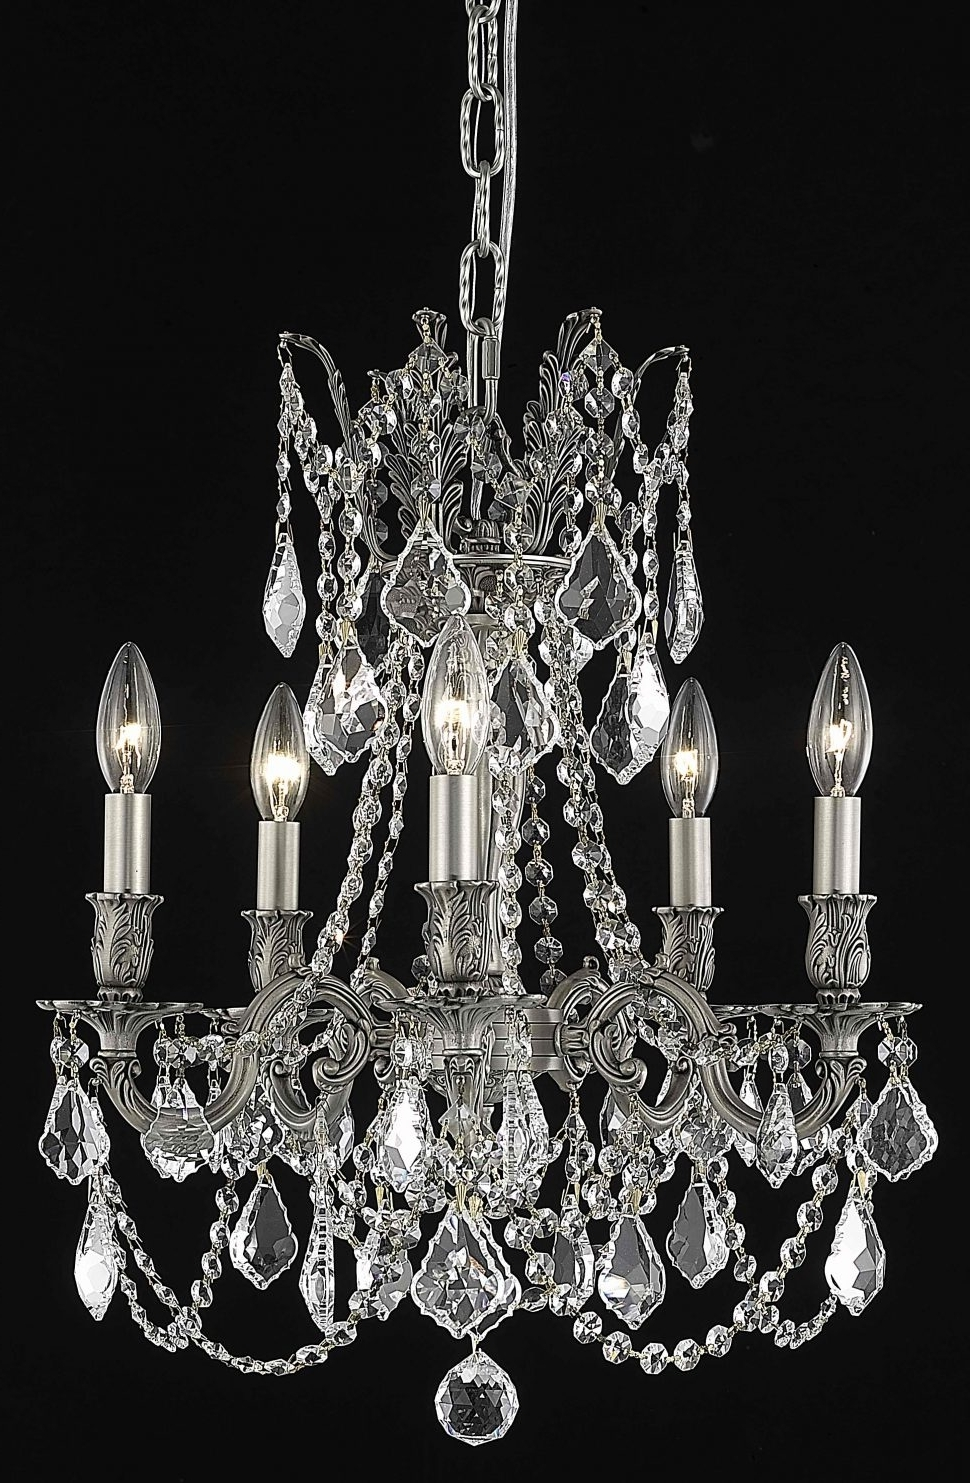 Best And Newest Chandeliers Design : Awesome Terrific Large Crystal Chandelier Big Throughout Cheap Big Chandeliers (View 19 of 20)